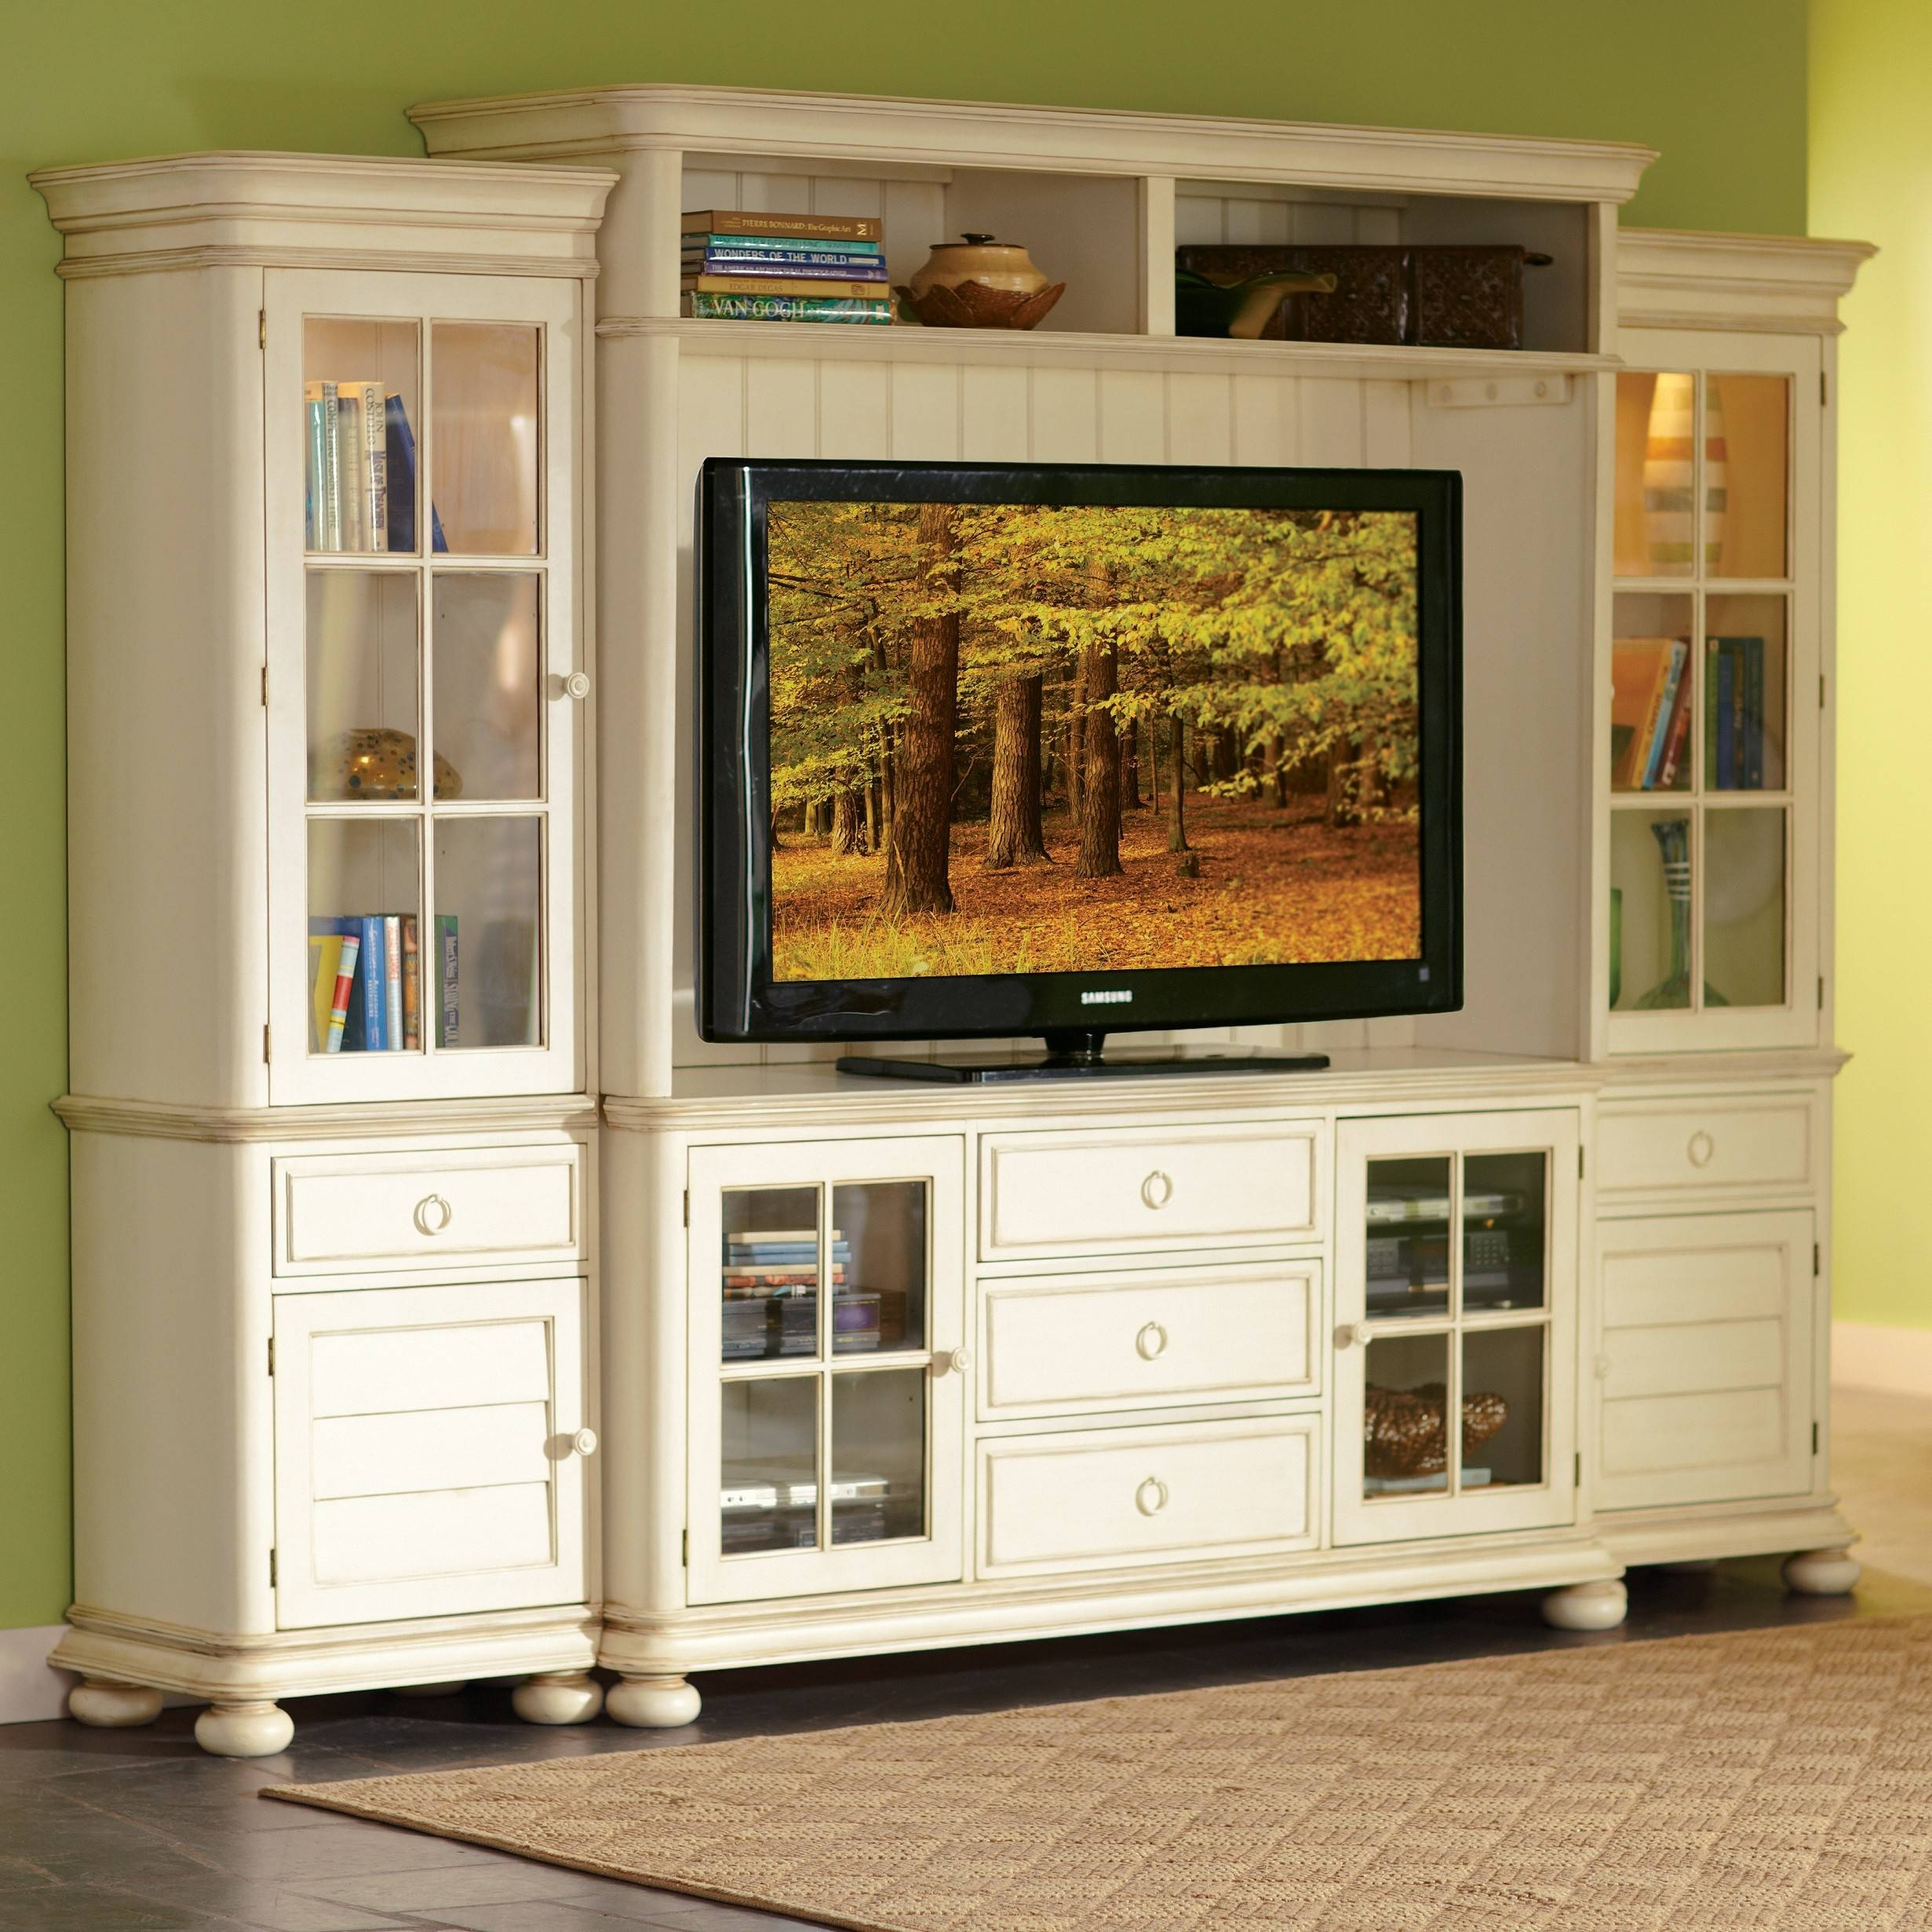 Dark Brown Oak Wood Corner Tv Stand With Glass Doors Of Dazzling within Corner Tv Cabinets With Glass Doors (Image 6 of 15)